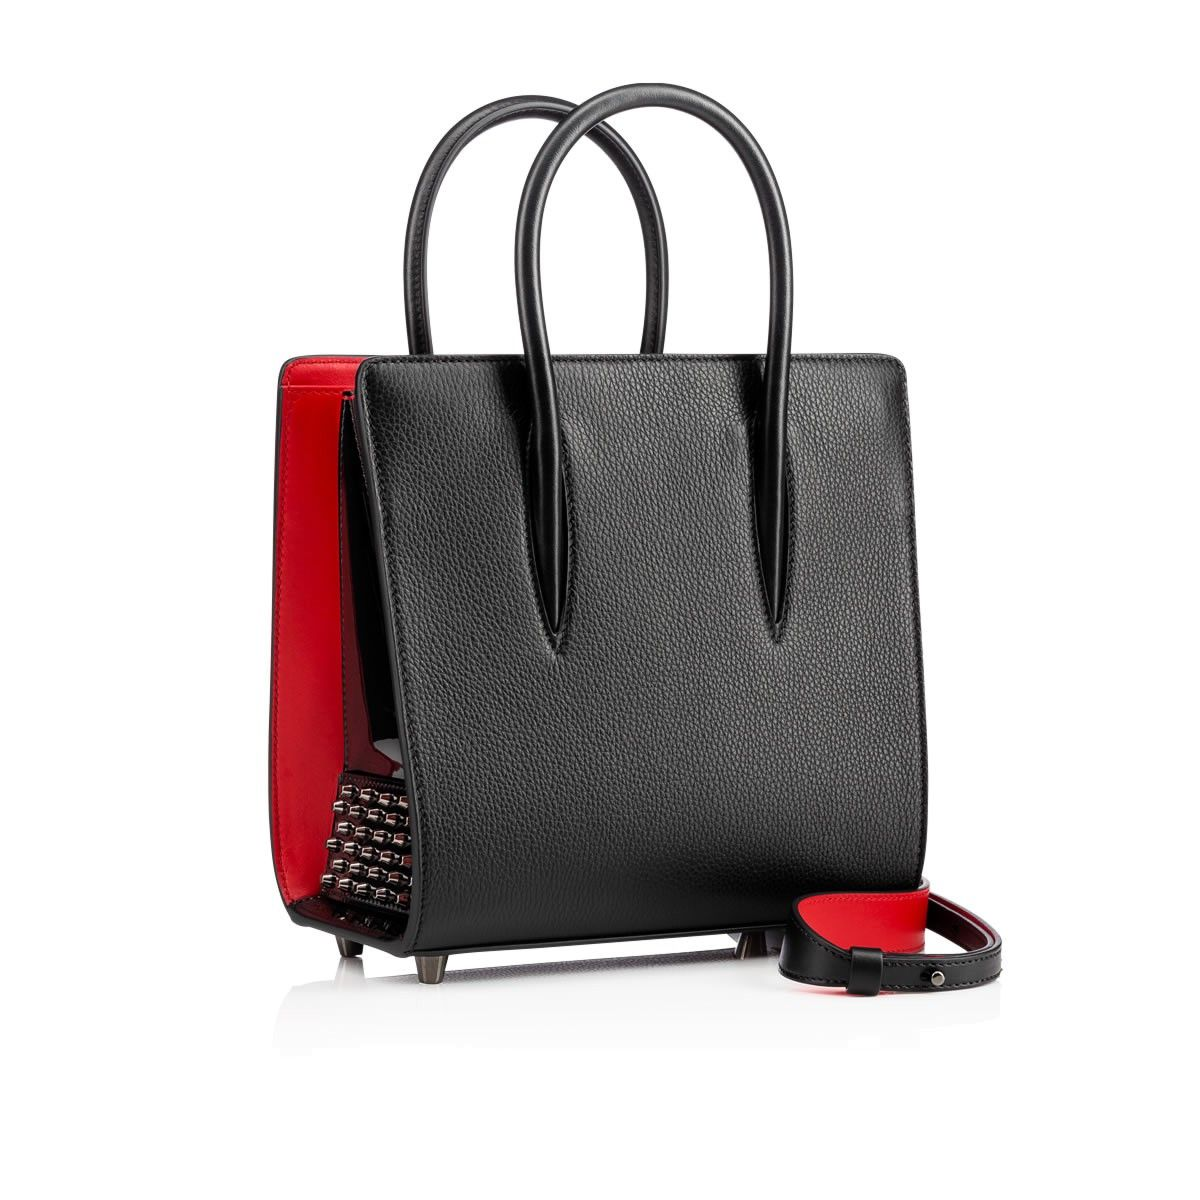 b7f64d41639 Paloma Small Black Calfskin - Handbags - Christian Louboutin in 2019 ...